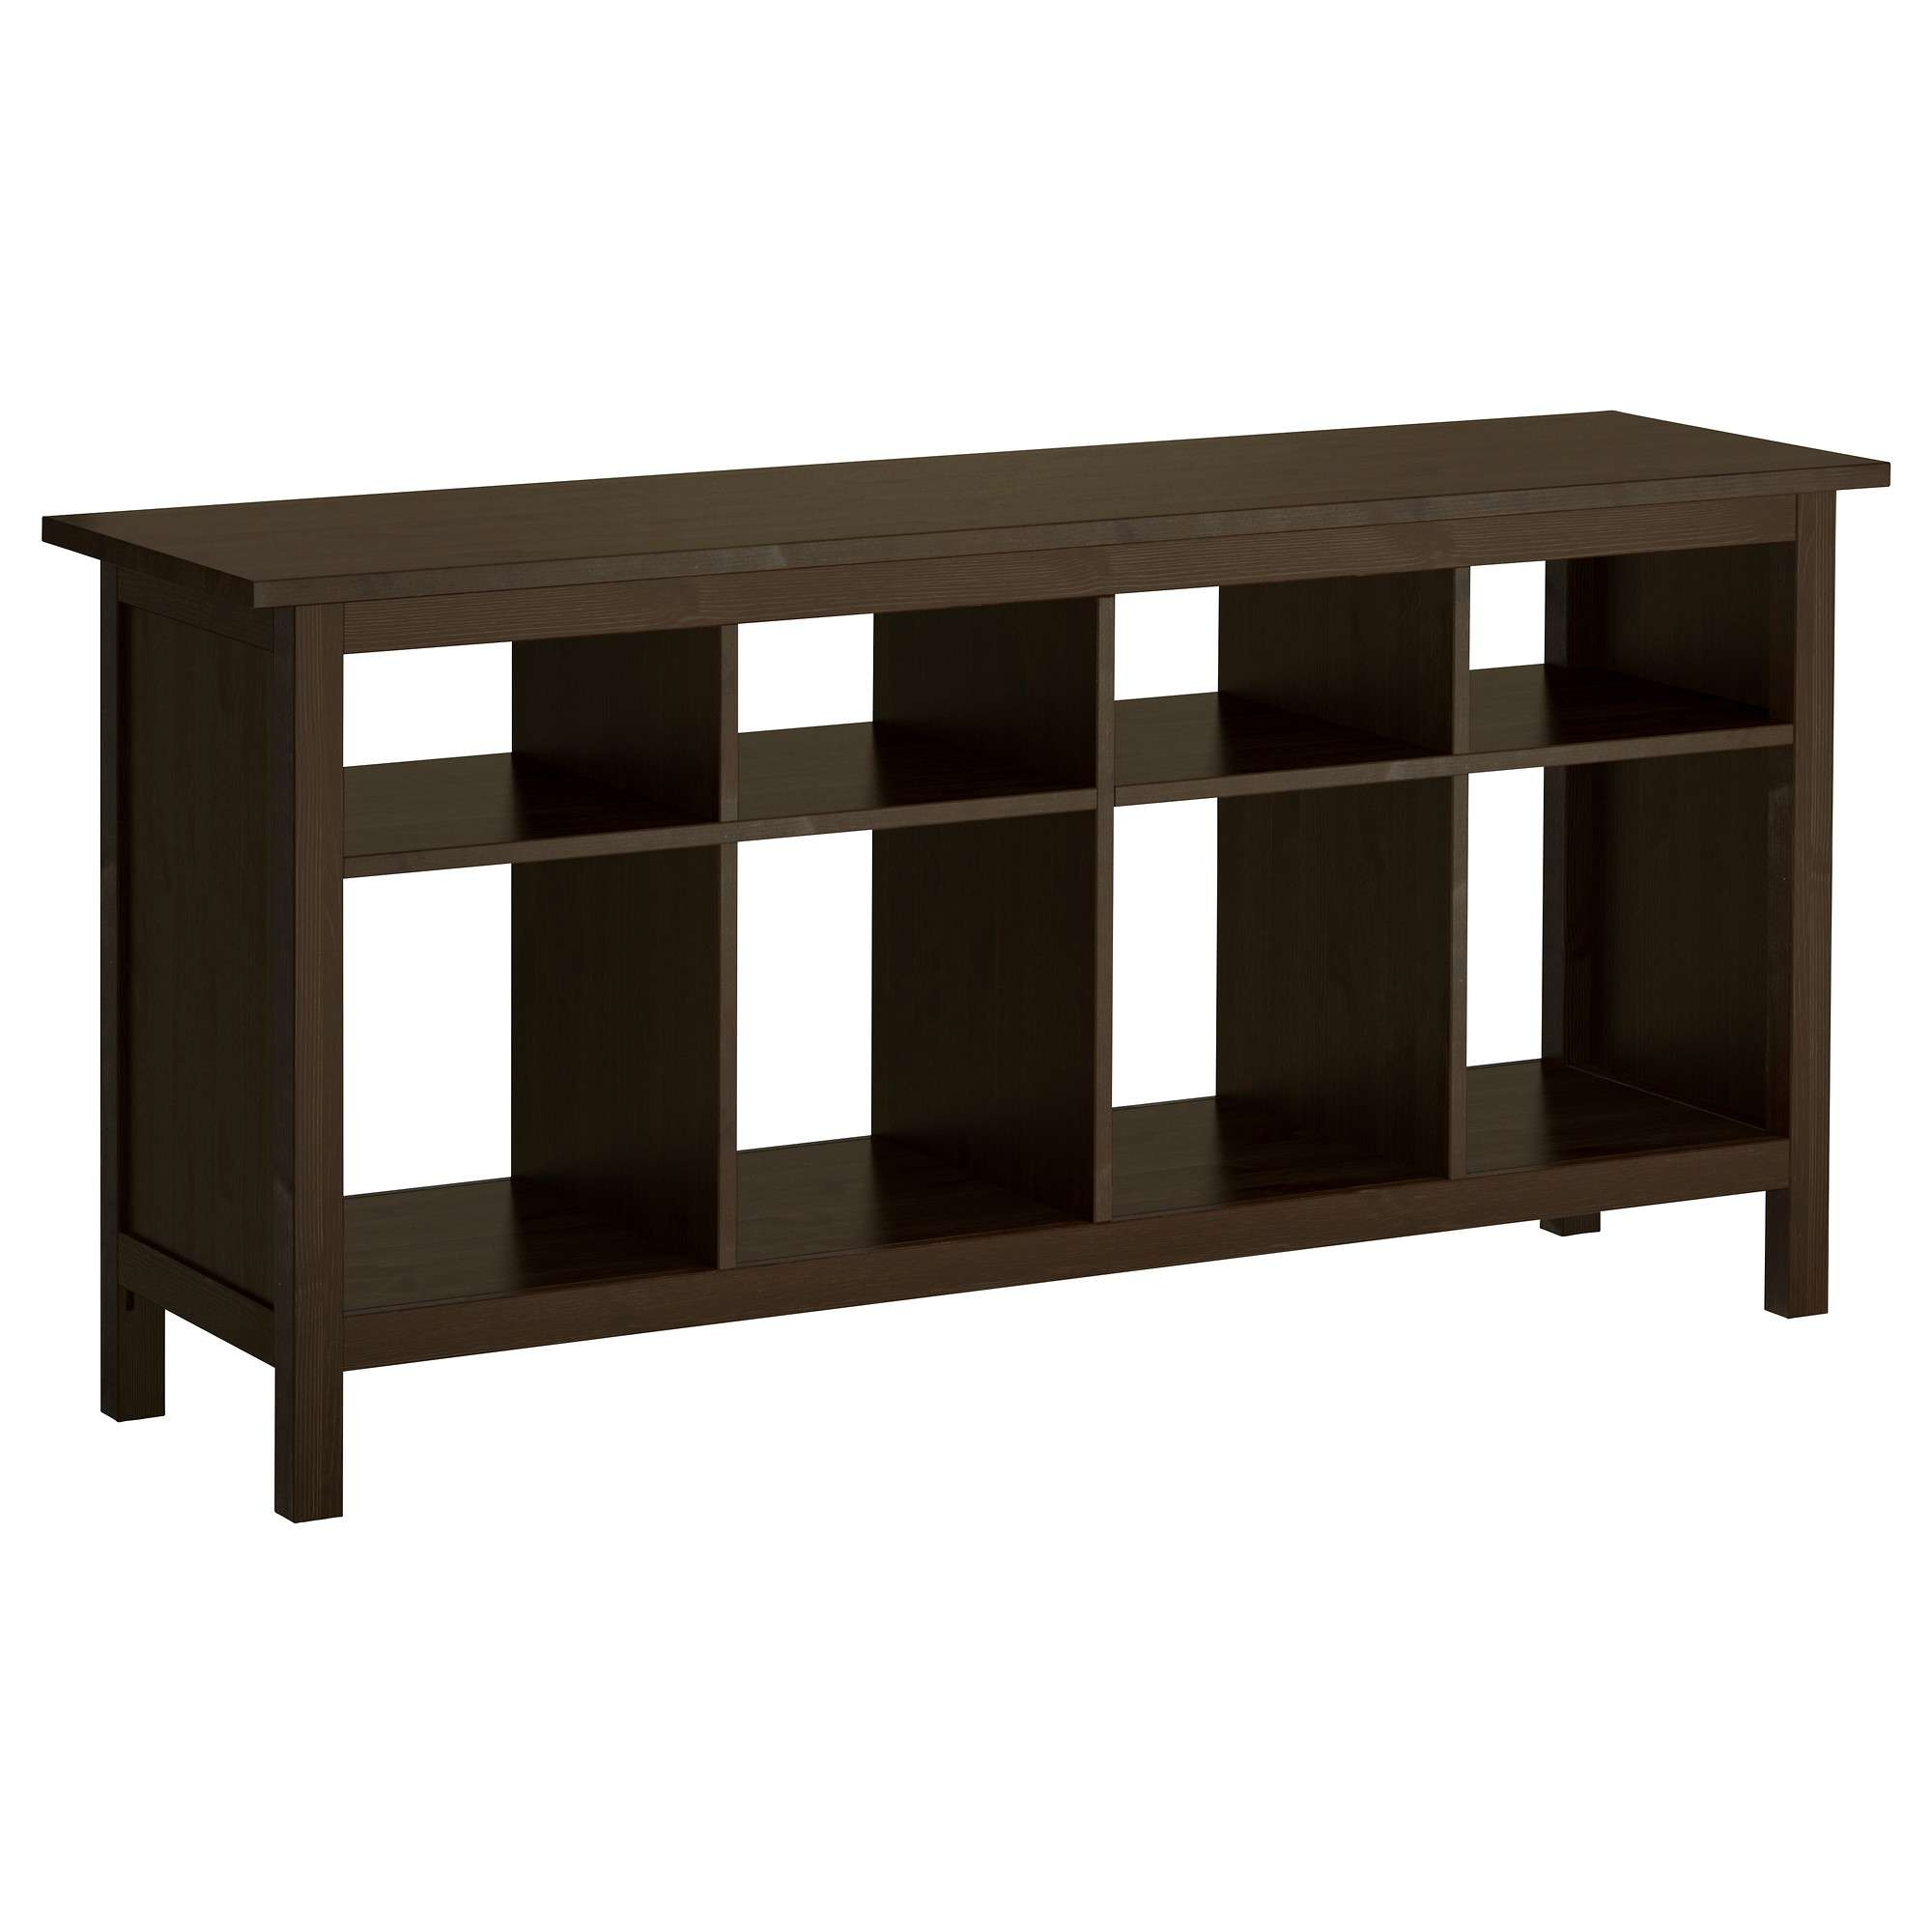 Console Tables, Sofa Tables & Sideboards – Ikea With Ikea Sideboards (View 16 of 20)